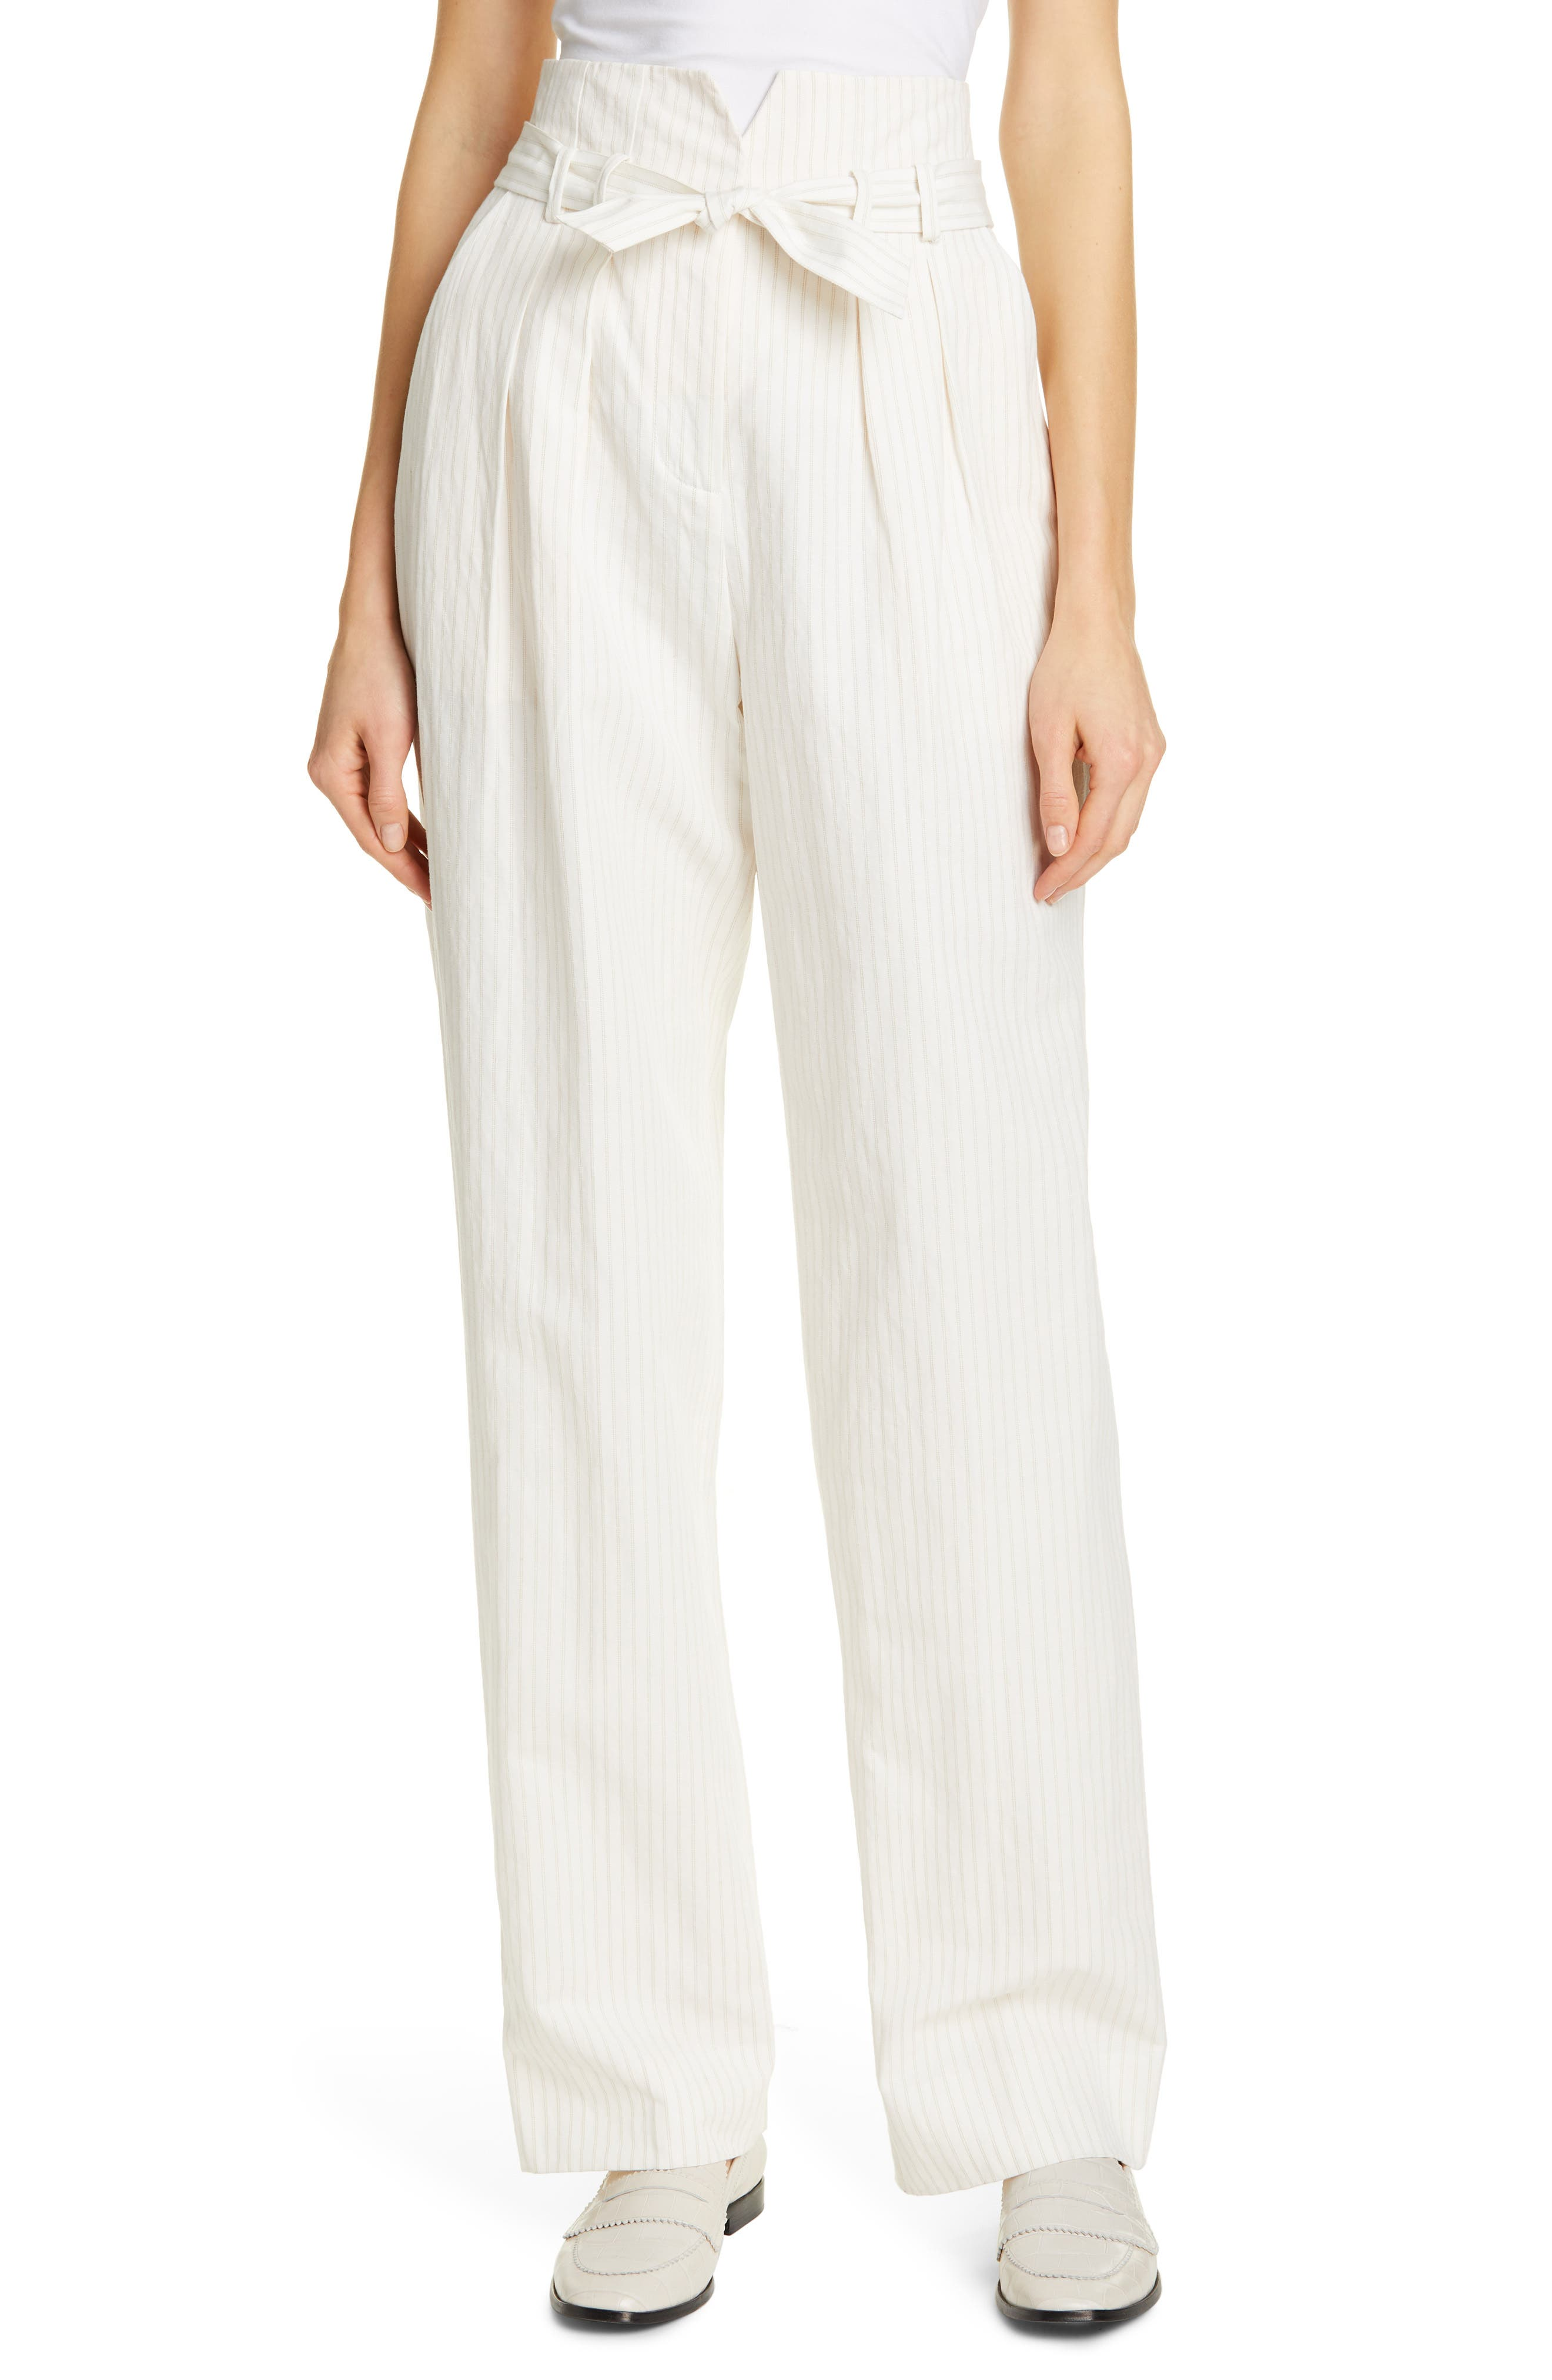 REBECCA TAYLOR Pinstripe Belted Wide Leg Pants, Main, color, SNOW COMBO